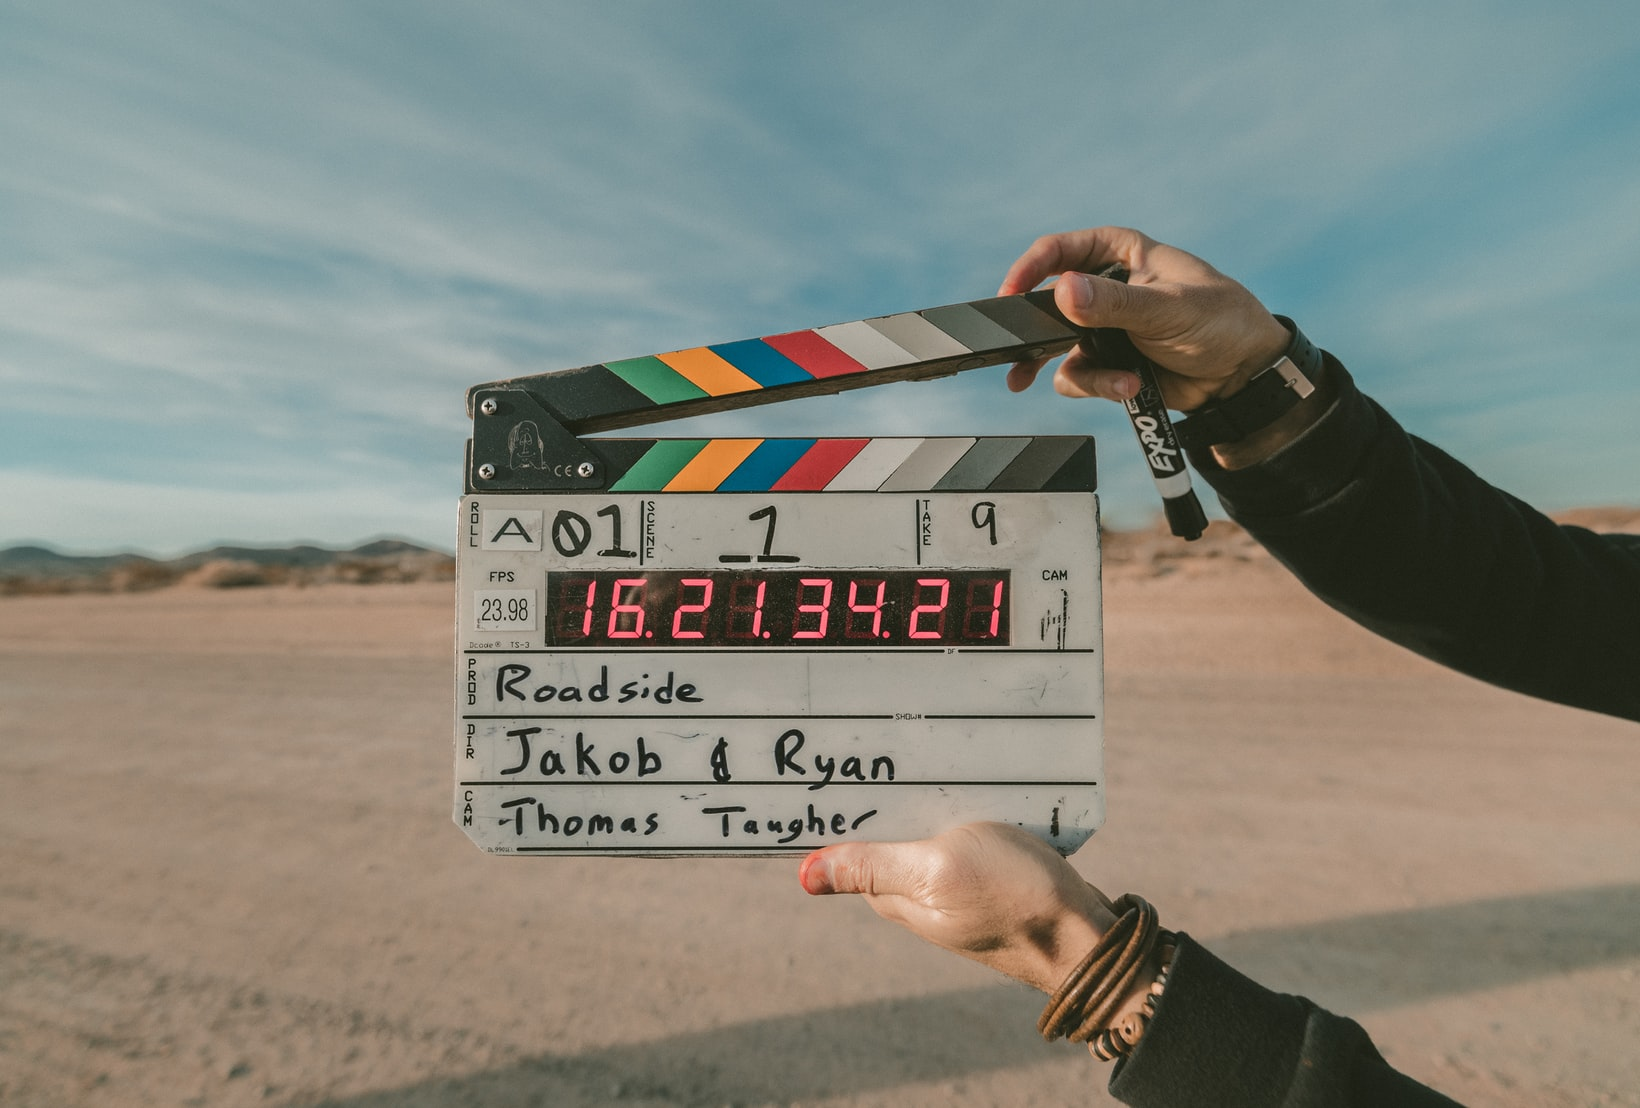 Person holding clapperboard in front of desert